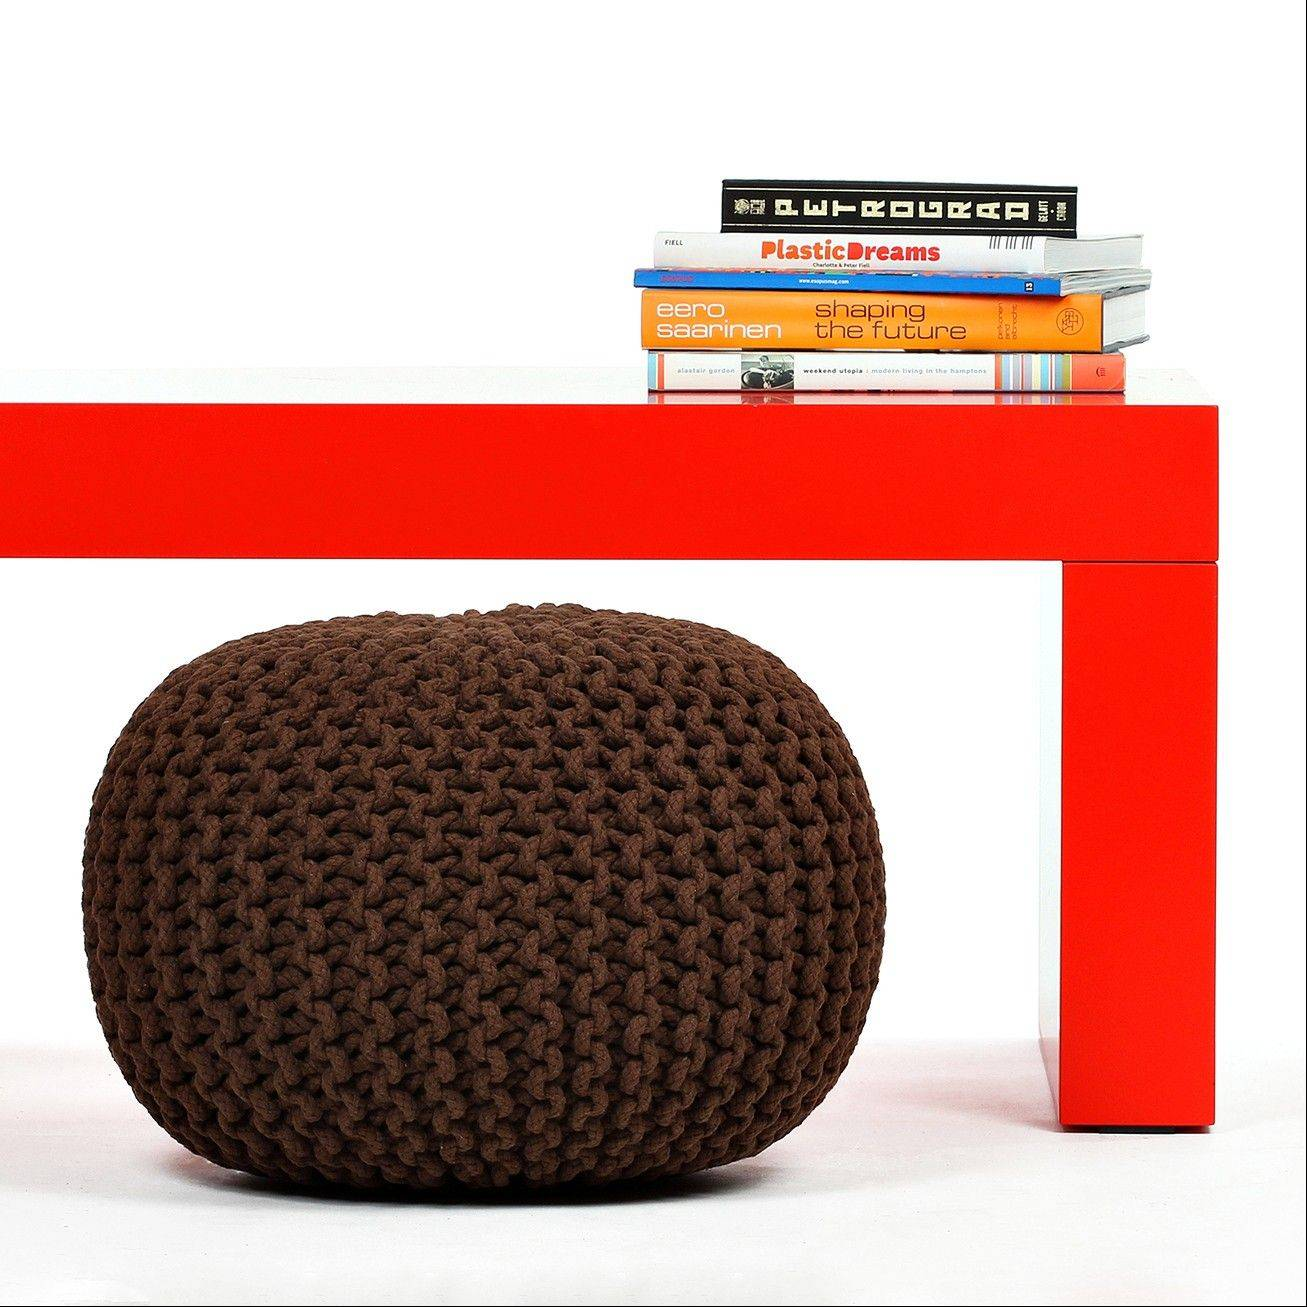 Poufs like these from Fab.com offer low profile seating in a play space. With knitted, faux leather or kilim style upholstery, poufs are stylish, rugged and portable -- perfect for a modern home play space.